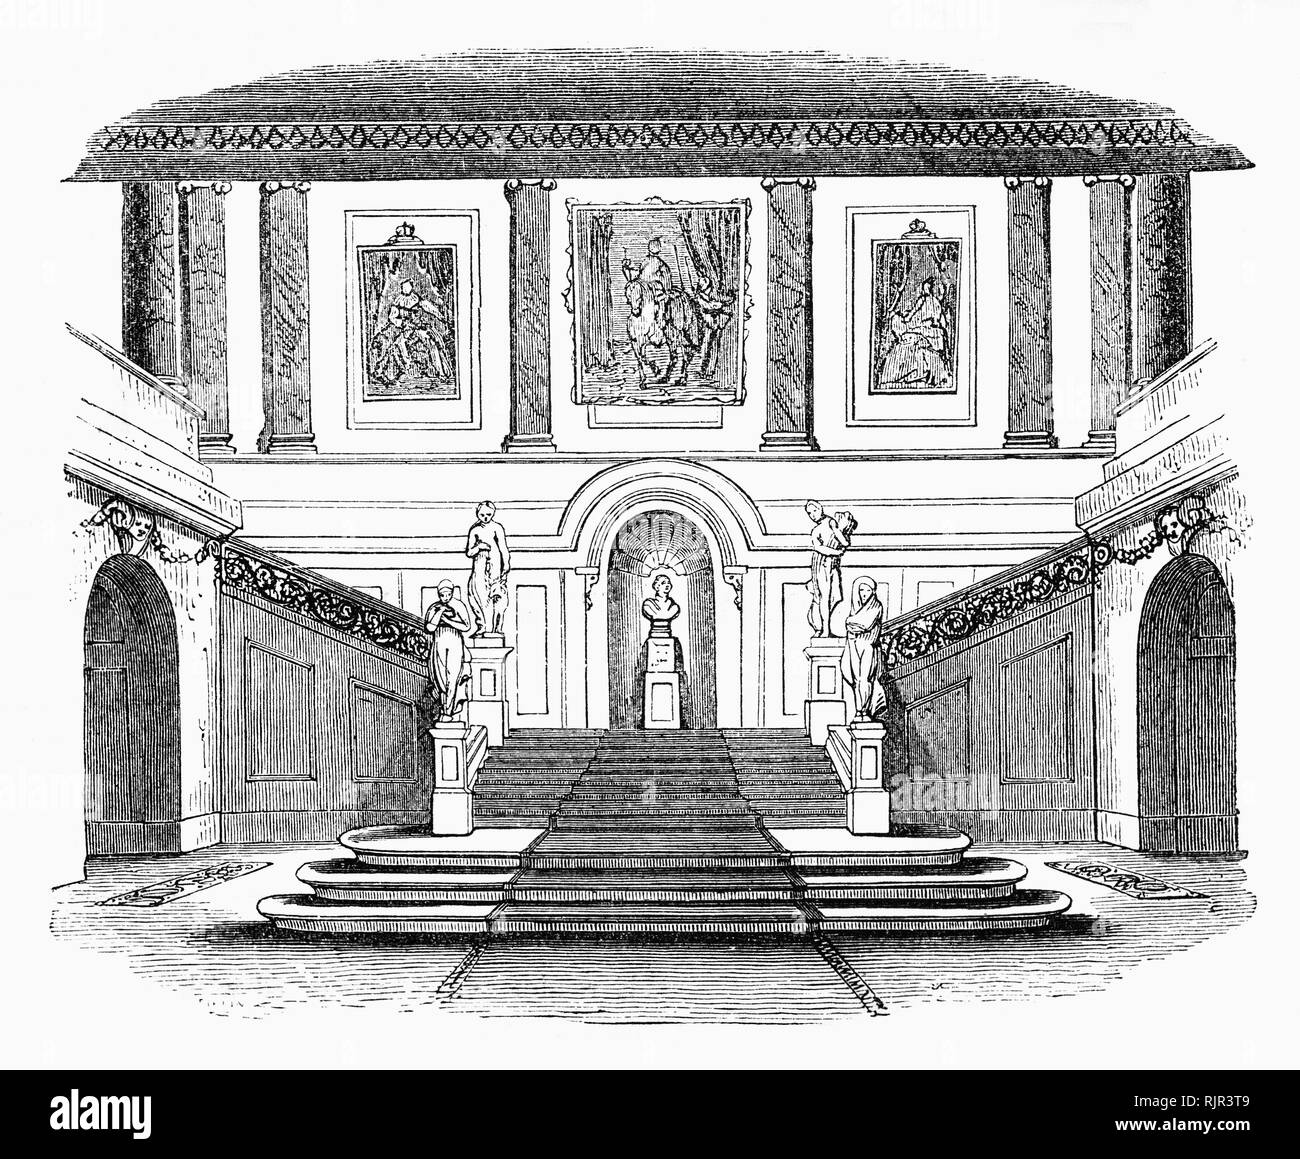 The interior of Goldsmiths' Hall at the junction of Foster Lane and Gresham Street in the City of London. It has served as an assay office and the headquarters of London's goldsmith guild, the Worshipful Company of Goldsmiths, one of the livery companies of the City of London,  since 1339. This the third hall was designed by Philip Hardwick and those present at the opening dinner in 1835 included the Duke of Wellington and Robert Peel. - Stock Image